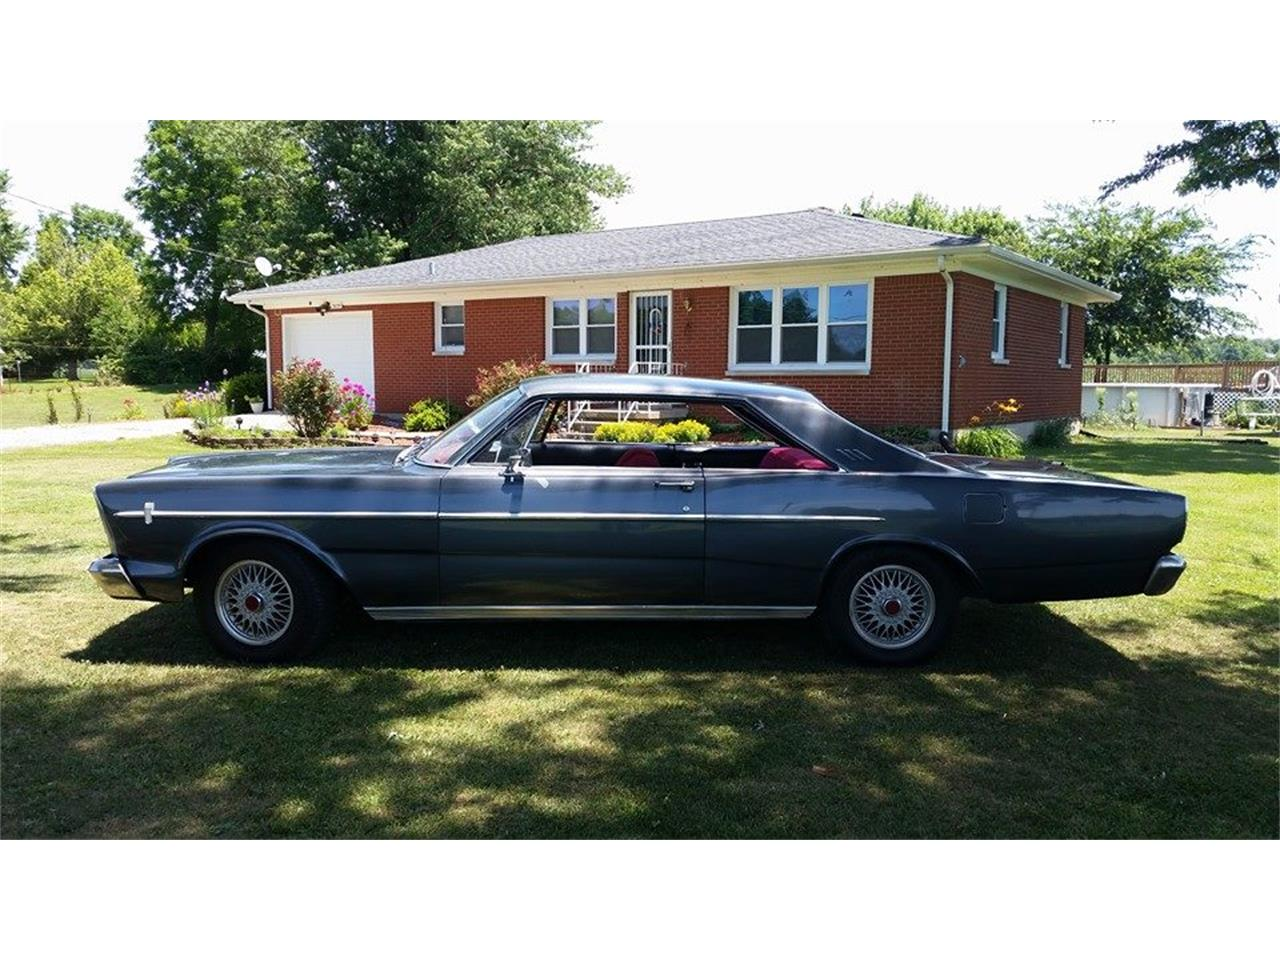 Large Picture of 1966 Galaxie 500 located in Oshkosh Wisconsin Offered by a Private Seller - L84N